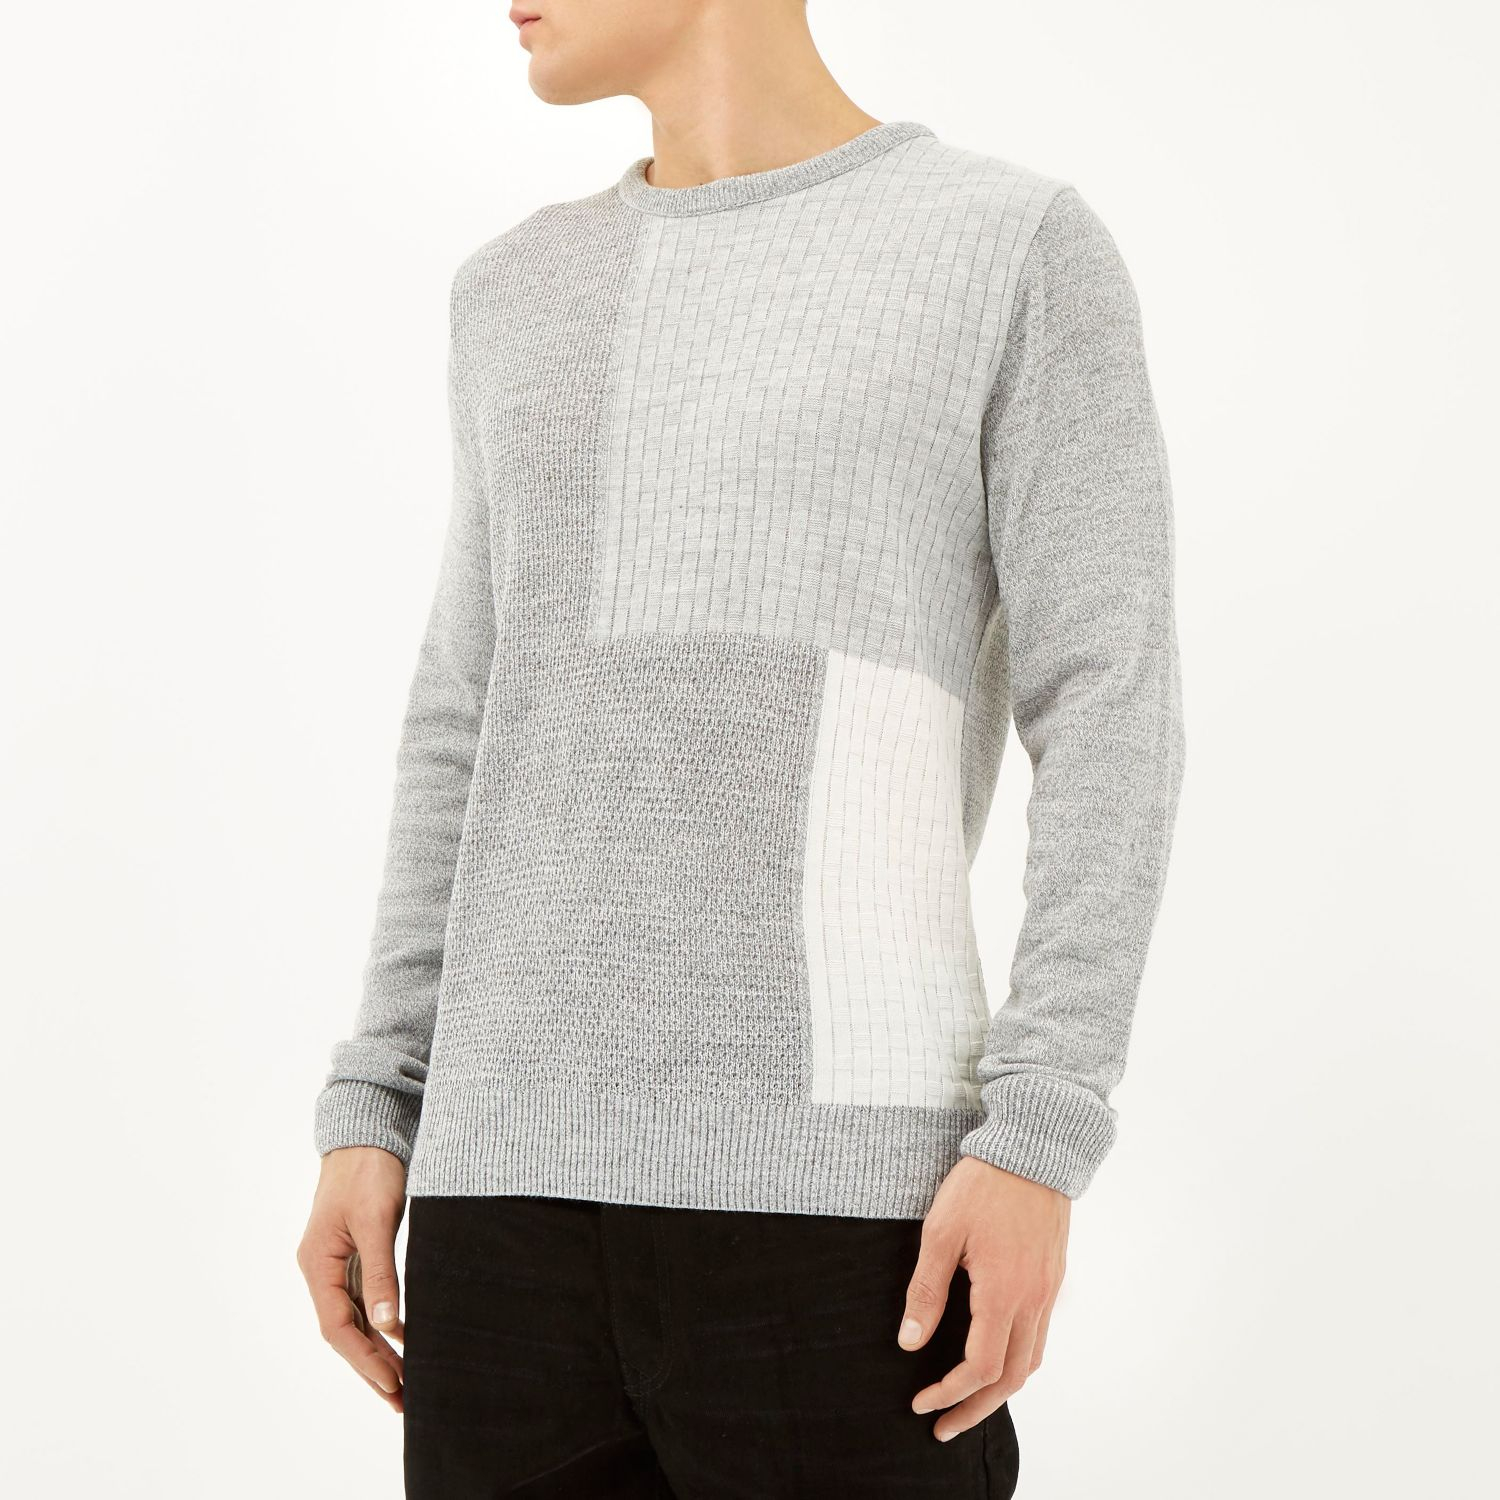 Gray Jumpers From River Island